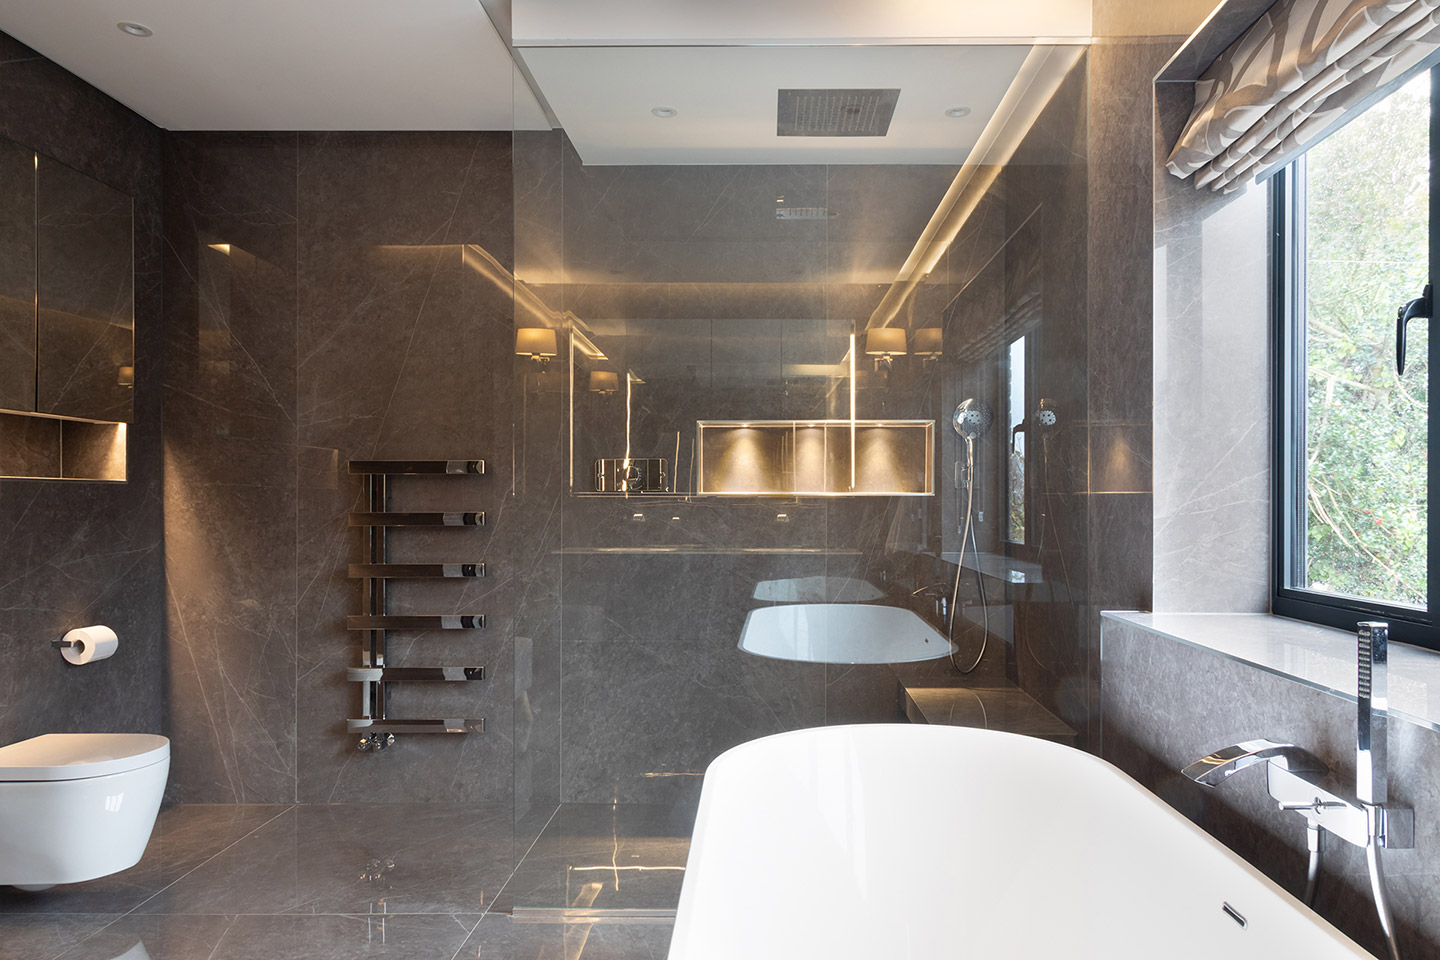 Master Bathroom & Tiles